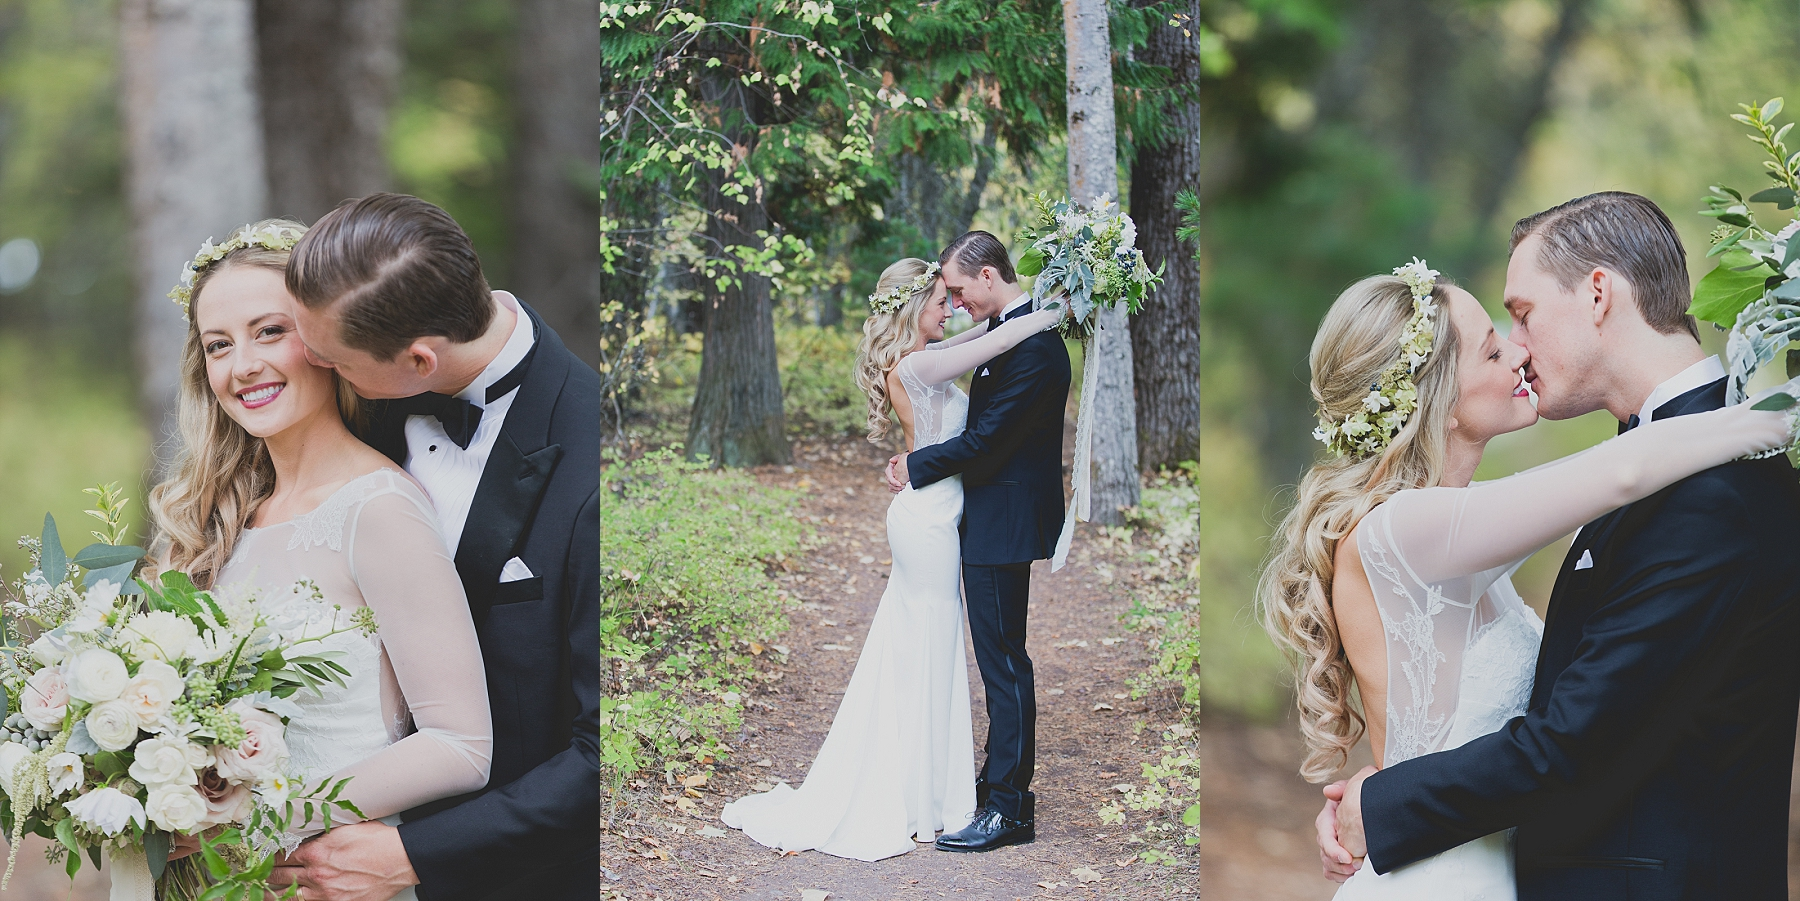 Jennifer_Mooney_Photo_glacier_park_wedding_Beargrass_florals_fall_wedding_elegant_montana_destination_velvet_bride_katie_may_dress_verona_gown_00032.jpg